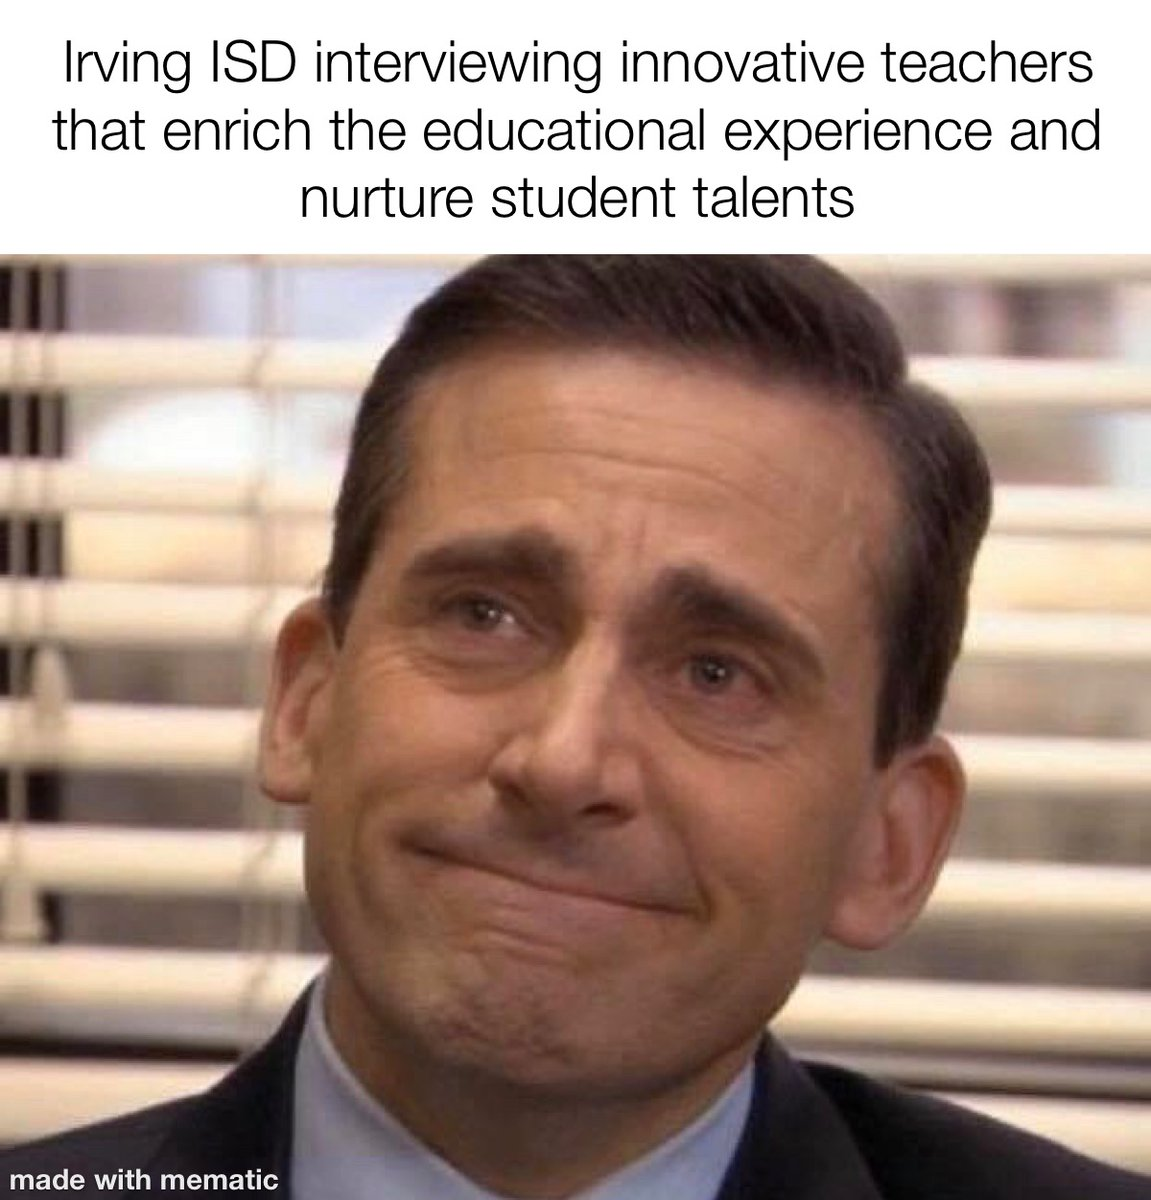 Apply now for jobs in @IrvingISD at irvingisd.net/careers